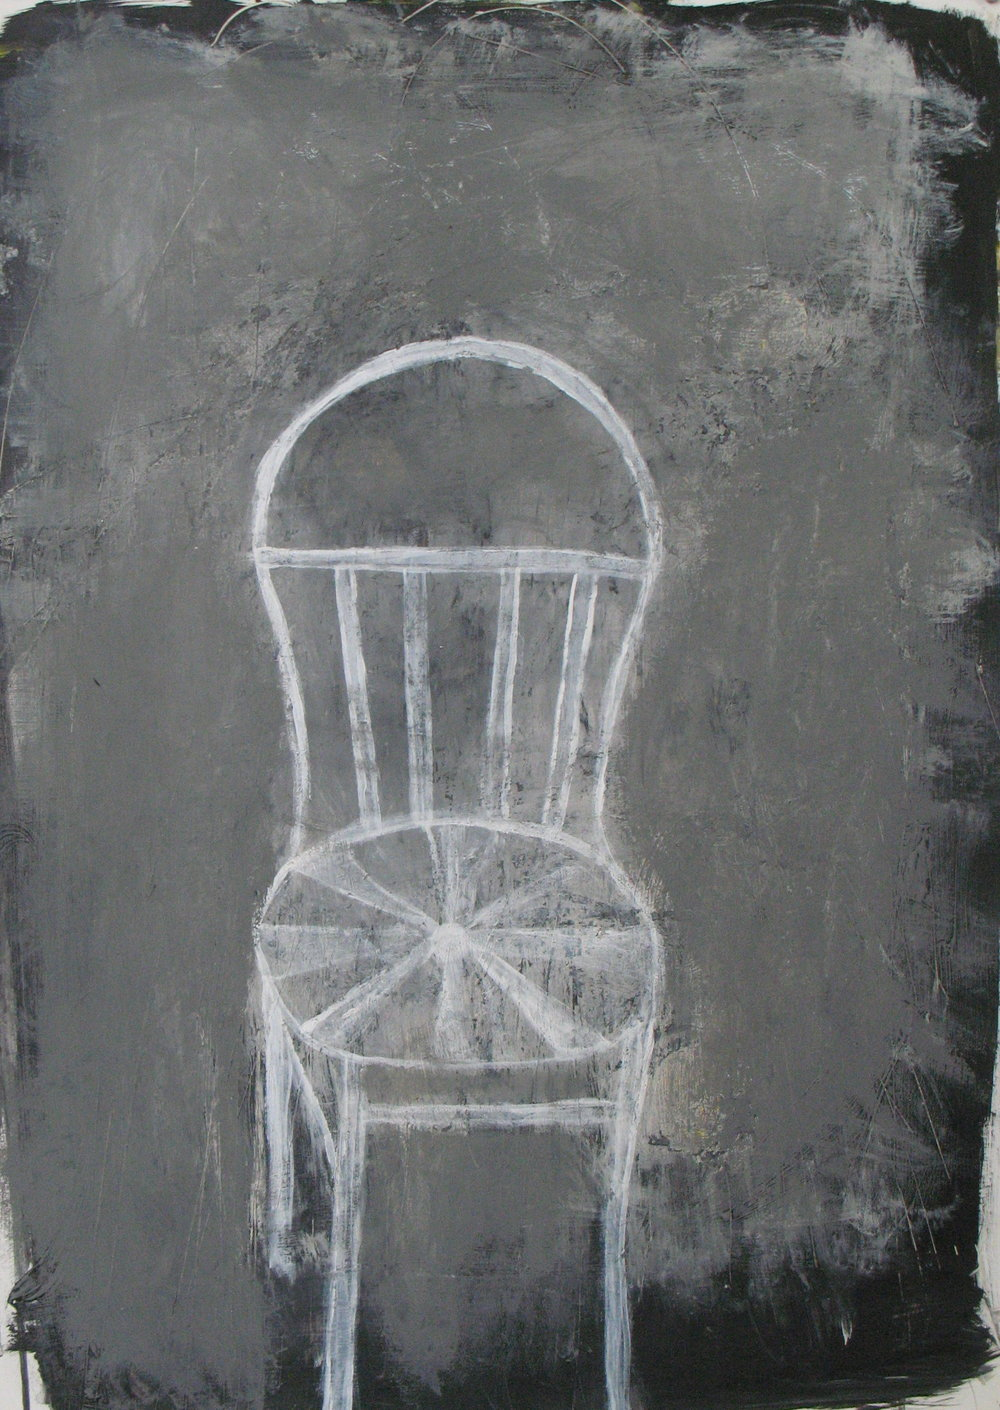 Ghost chair #2